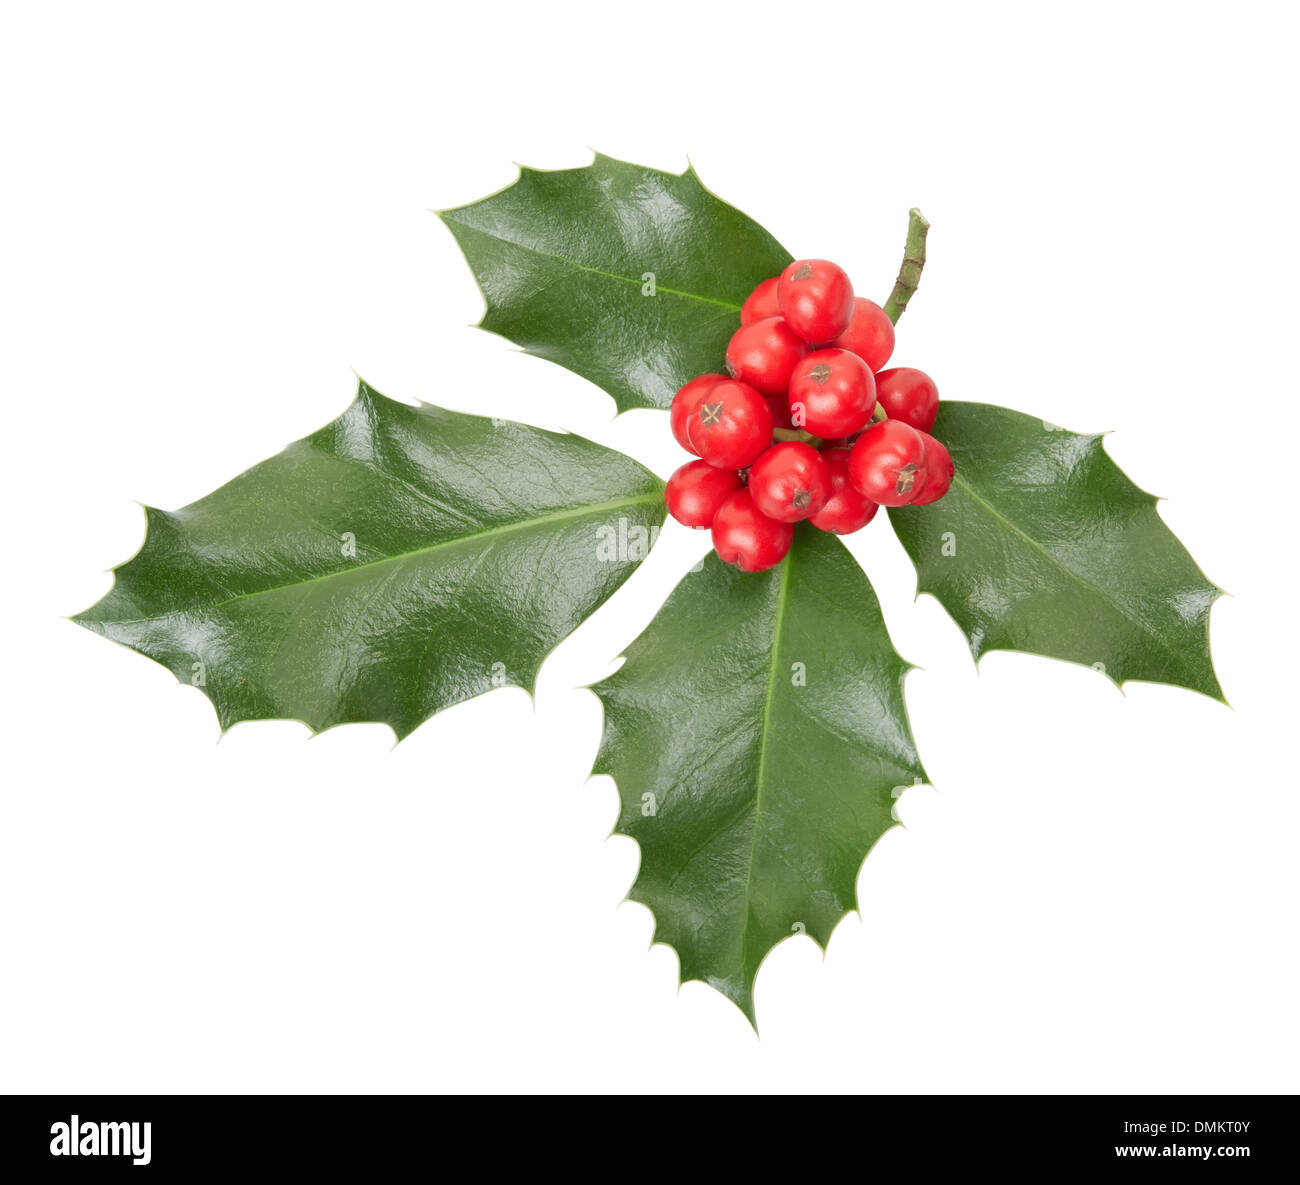 Holly twig, Christmas decoration isolated on white, clipping path included - Stock Image